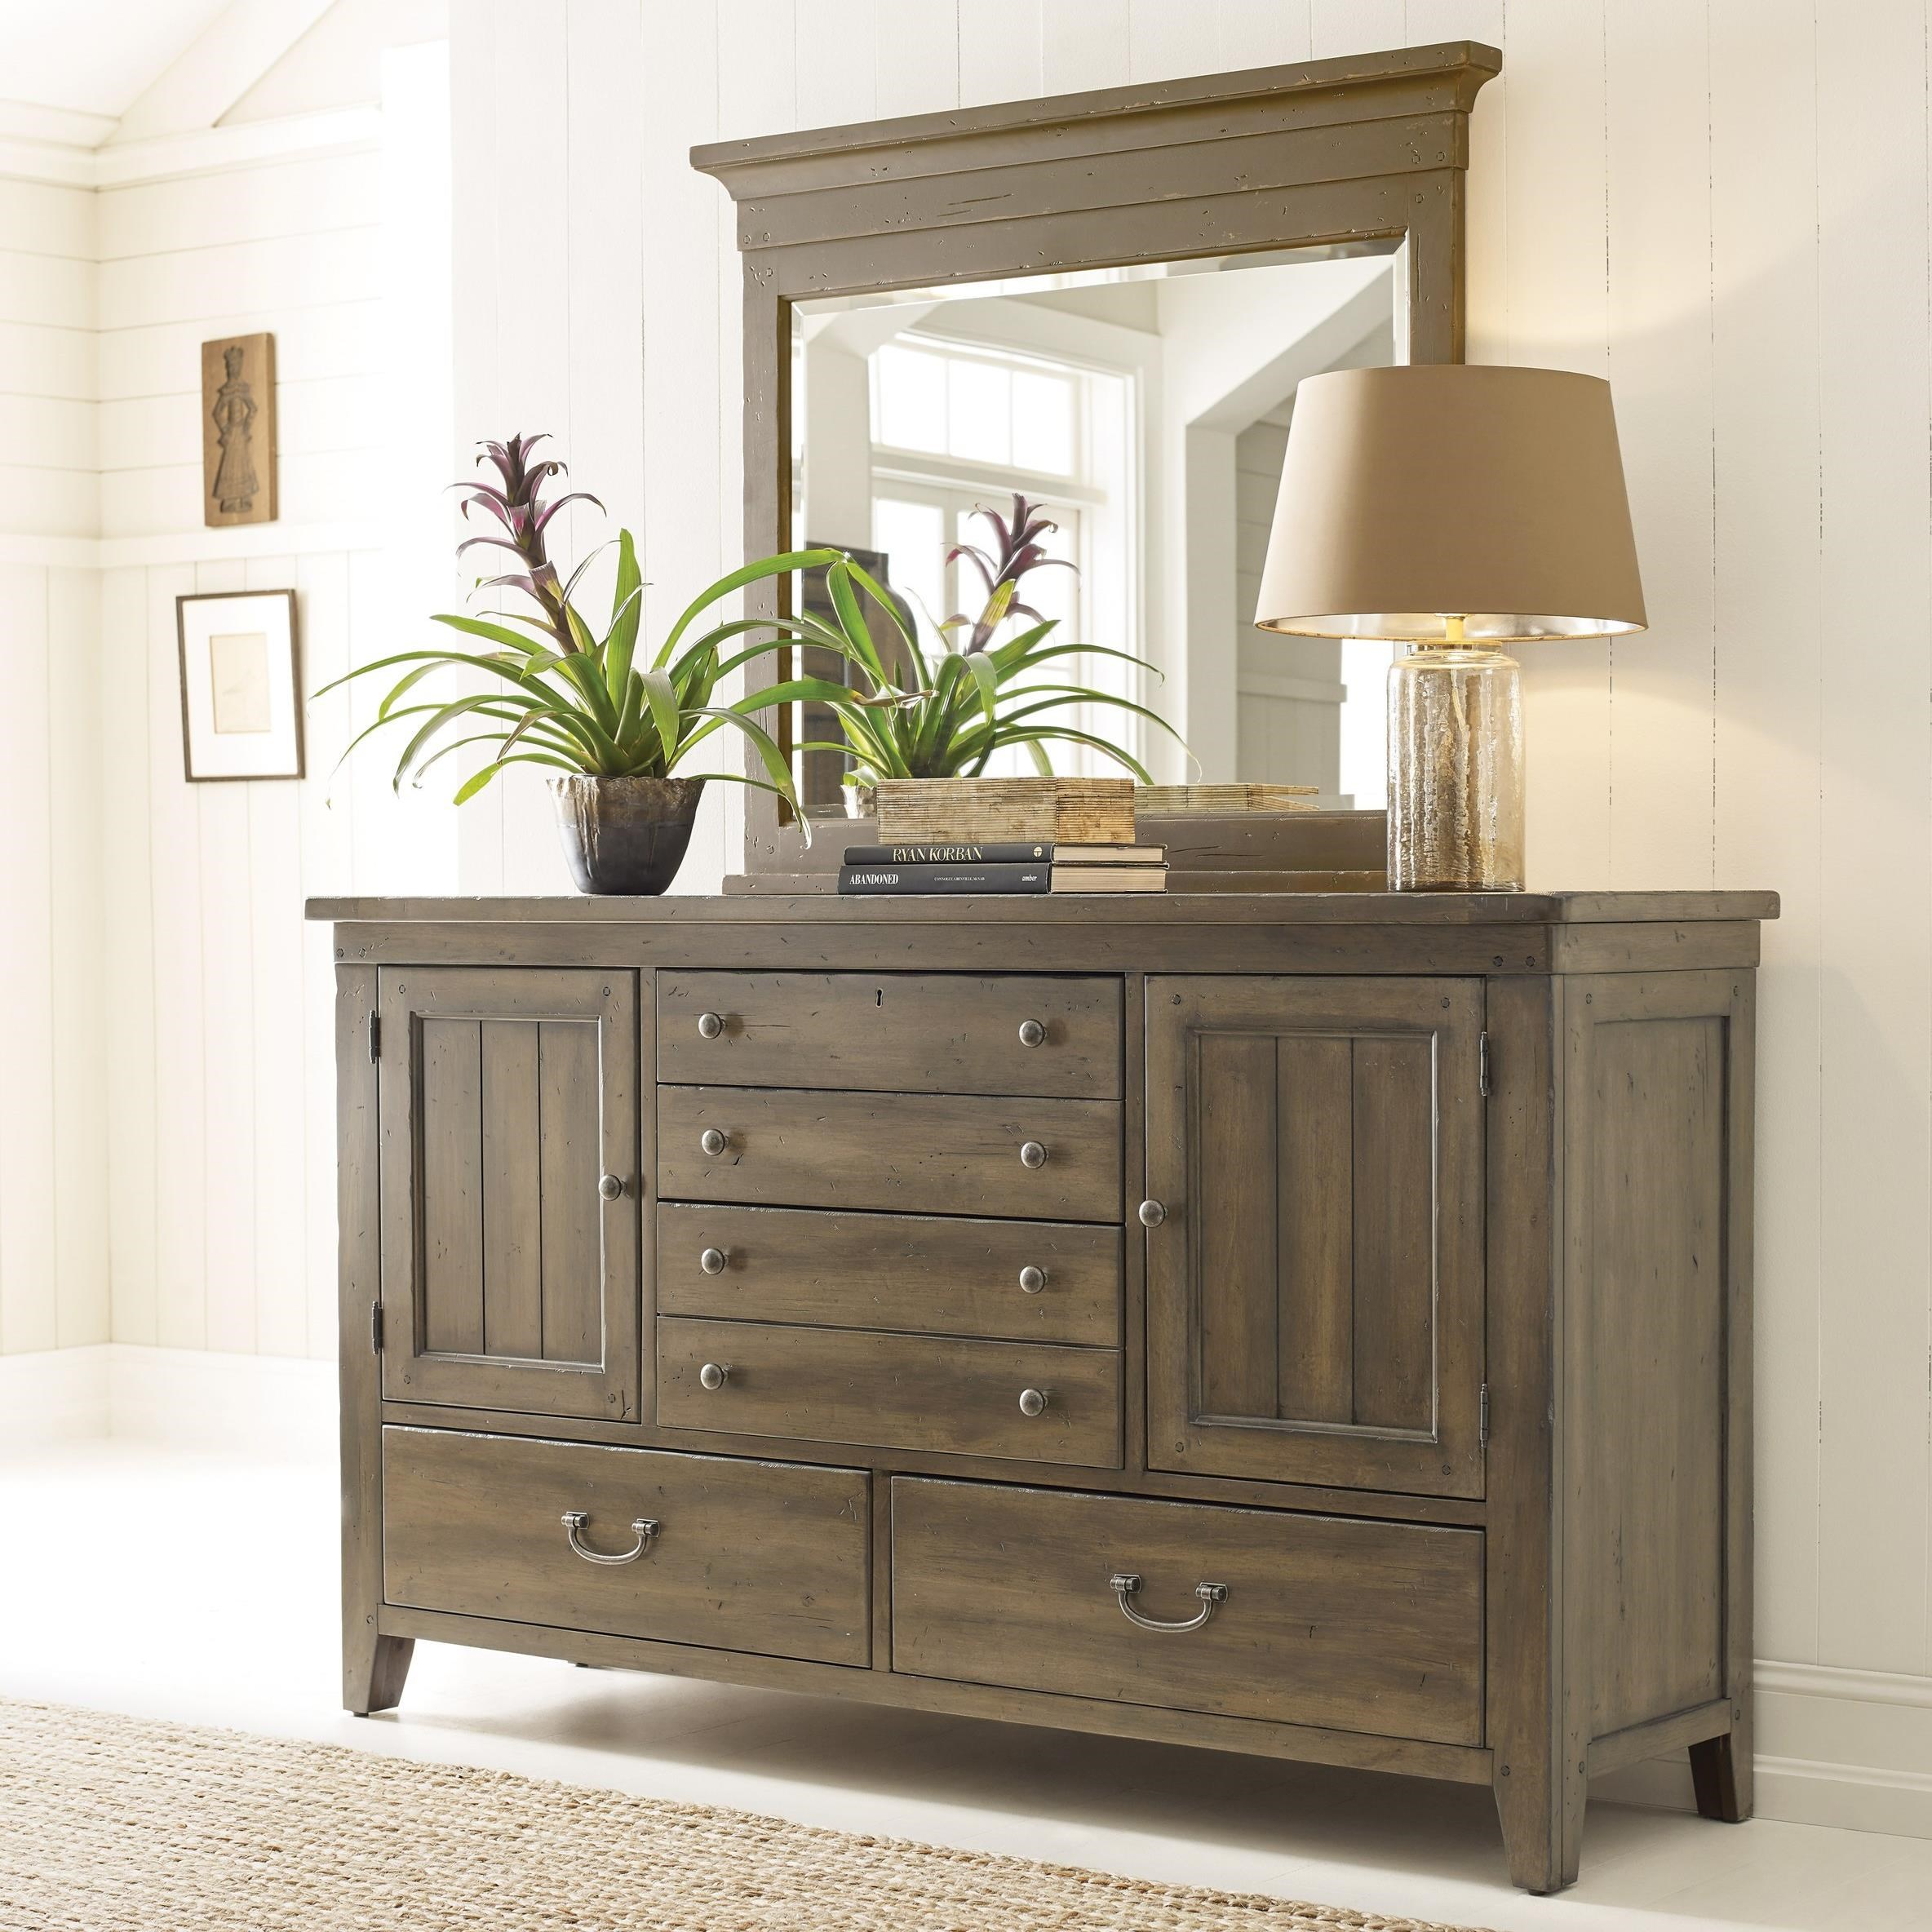 Mill House Dresser and Mirror Set by Kincaid Furniture at Northeast Factory Direct